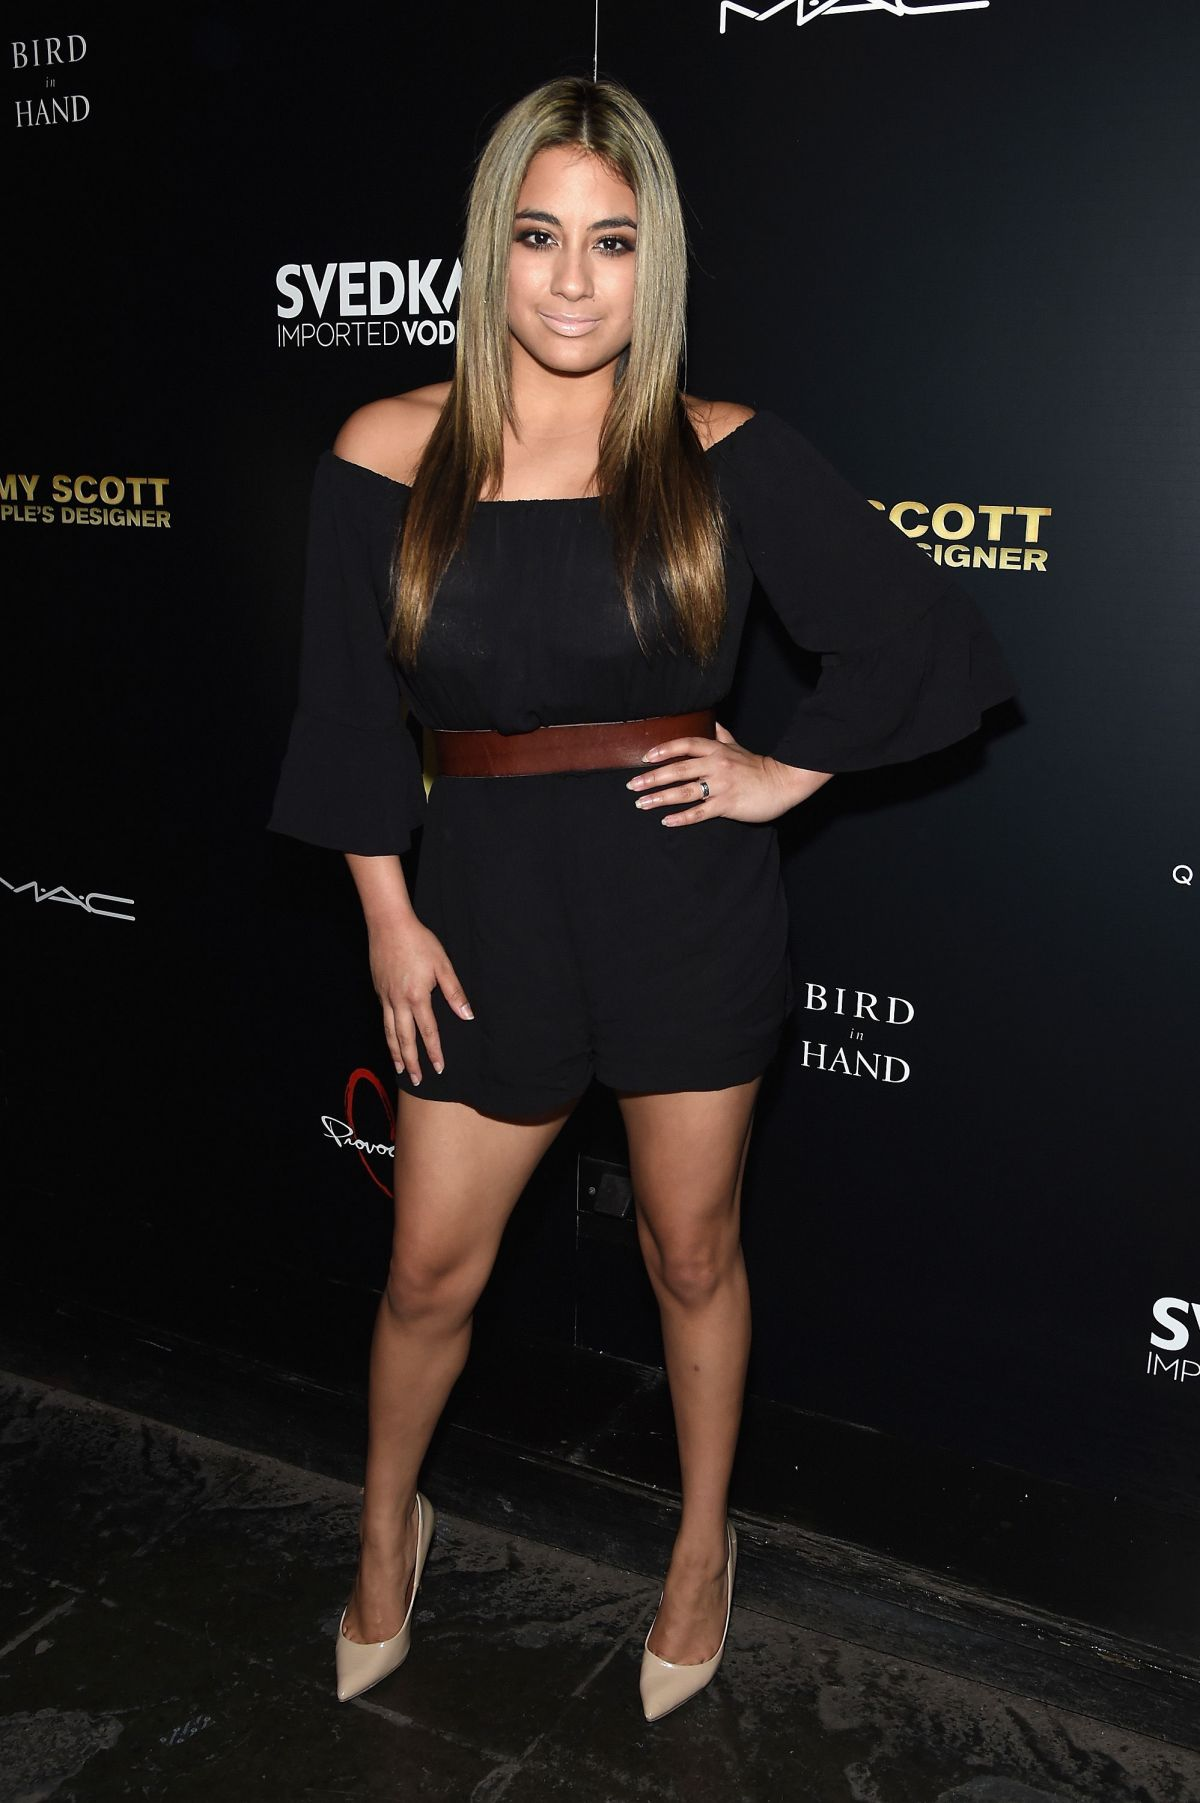 ALLY BROOKE at Jeremy Scott: The People's Designer Premiere in New York 09/15/2015